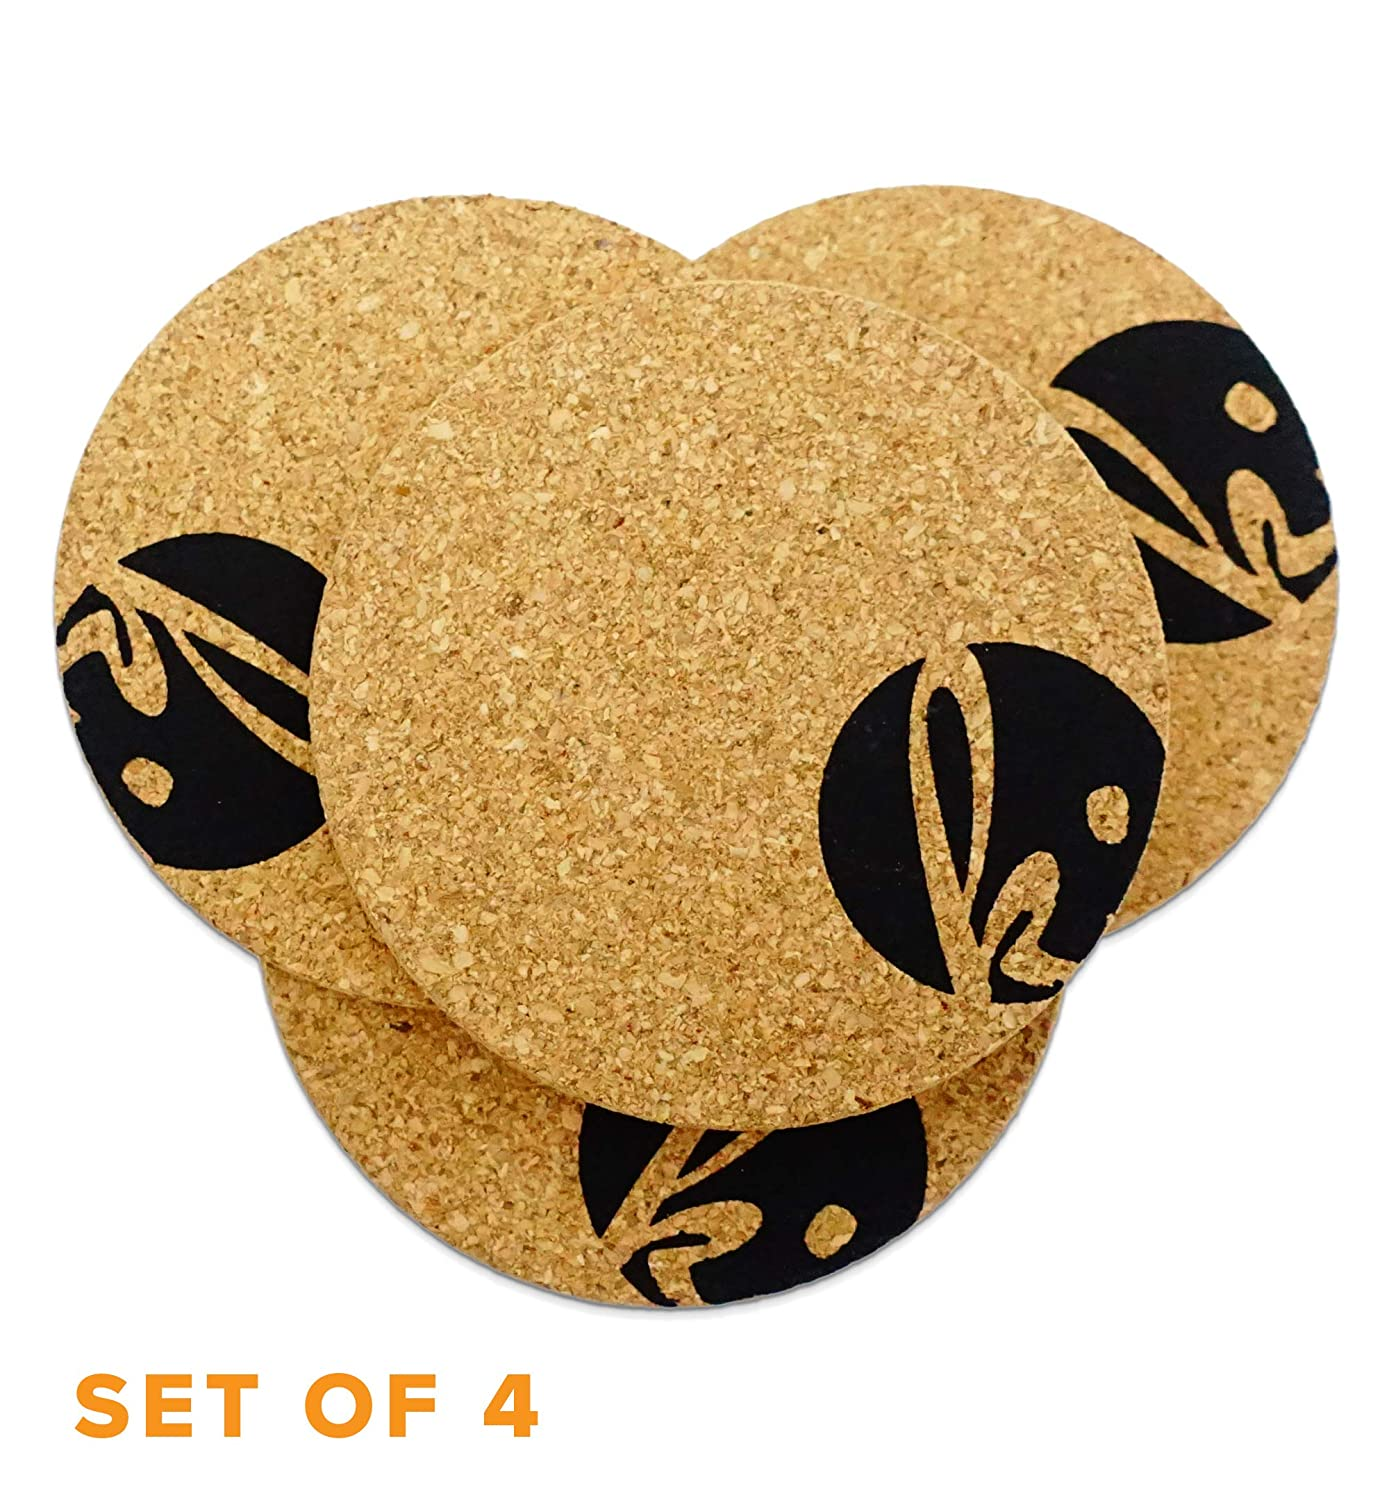 Amazon.com | Coaster Set of 4 - Protect Modern Home Furnishings with  Absorbent Cork Table Coasters for Bottom of Beverage (Circle): Coasters